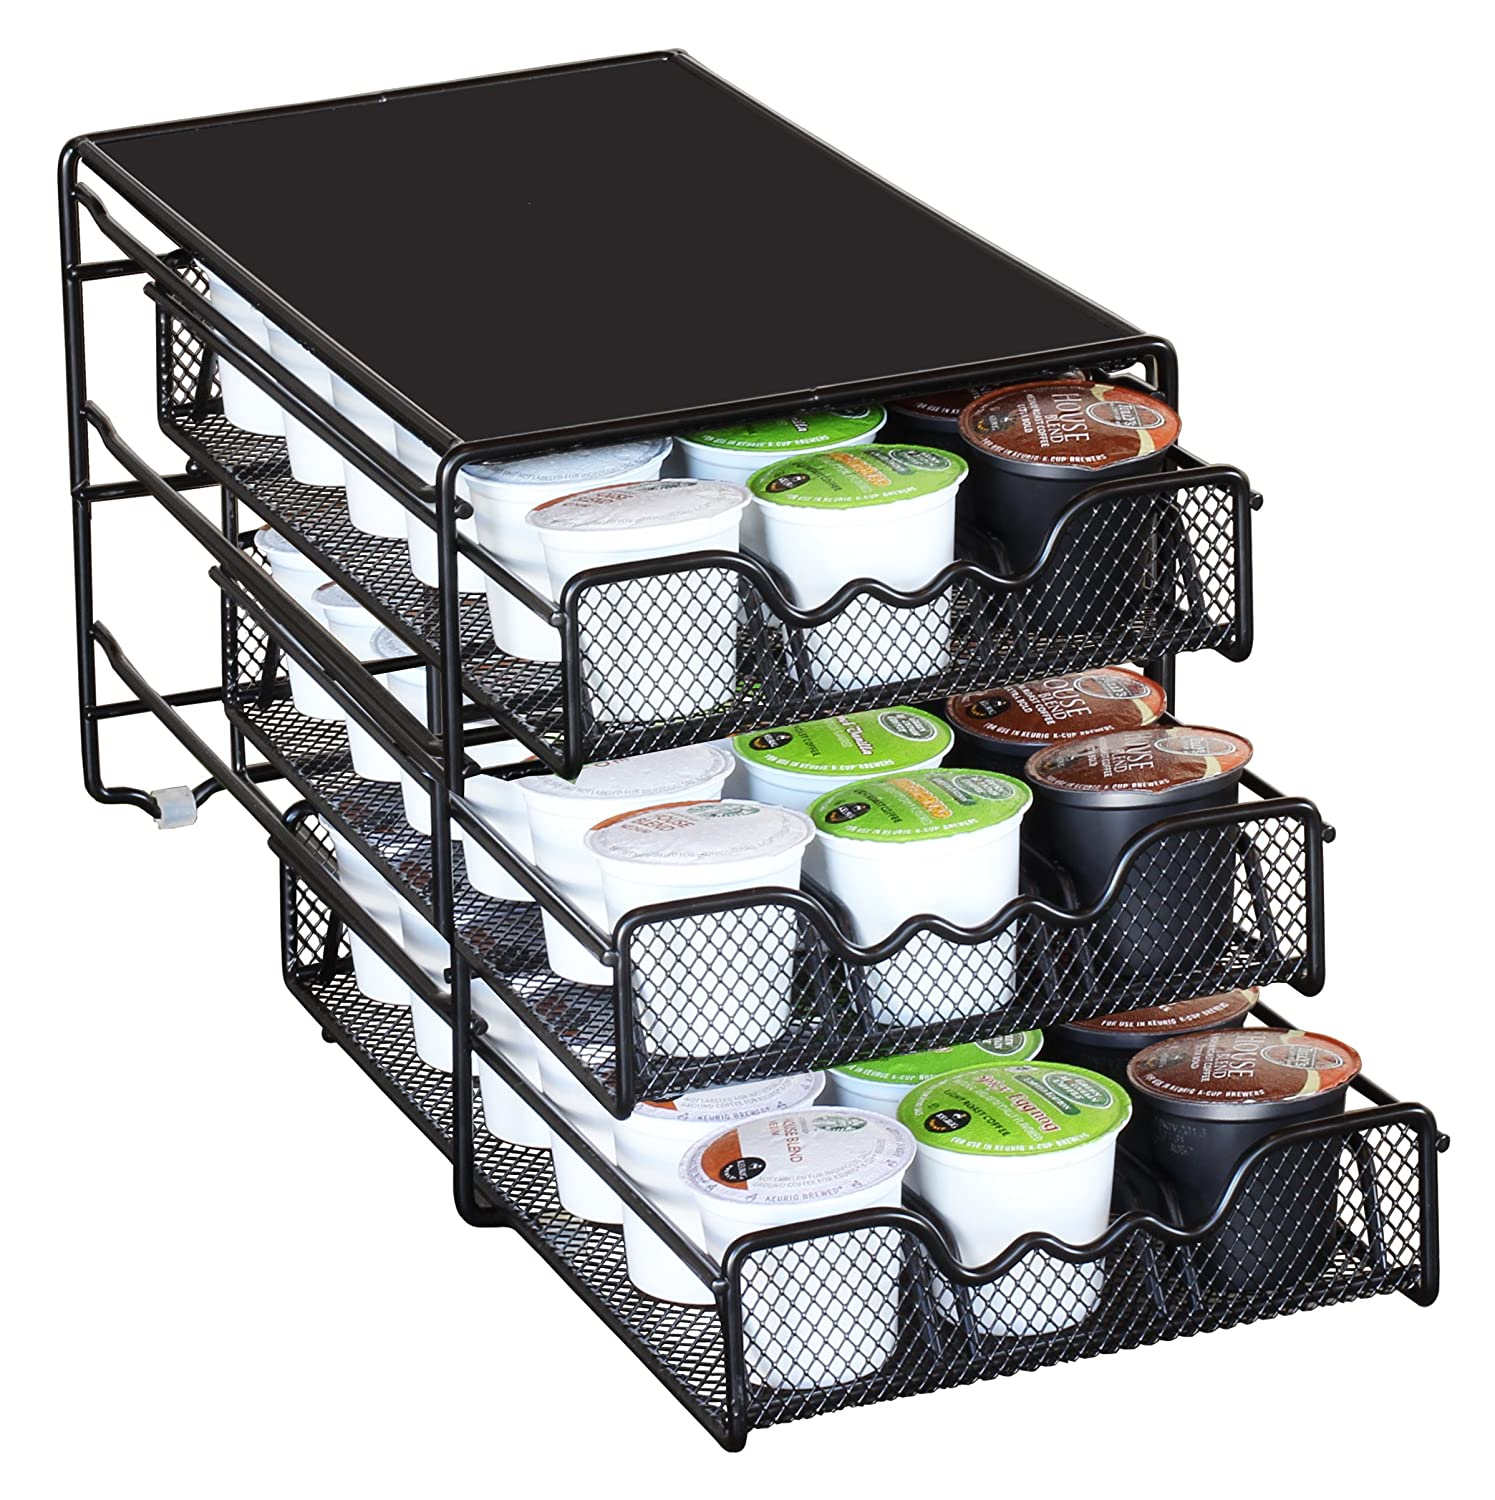 DecoBros 3 Tier Drawer Storage Holder 54 Keurig K-cup ...